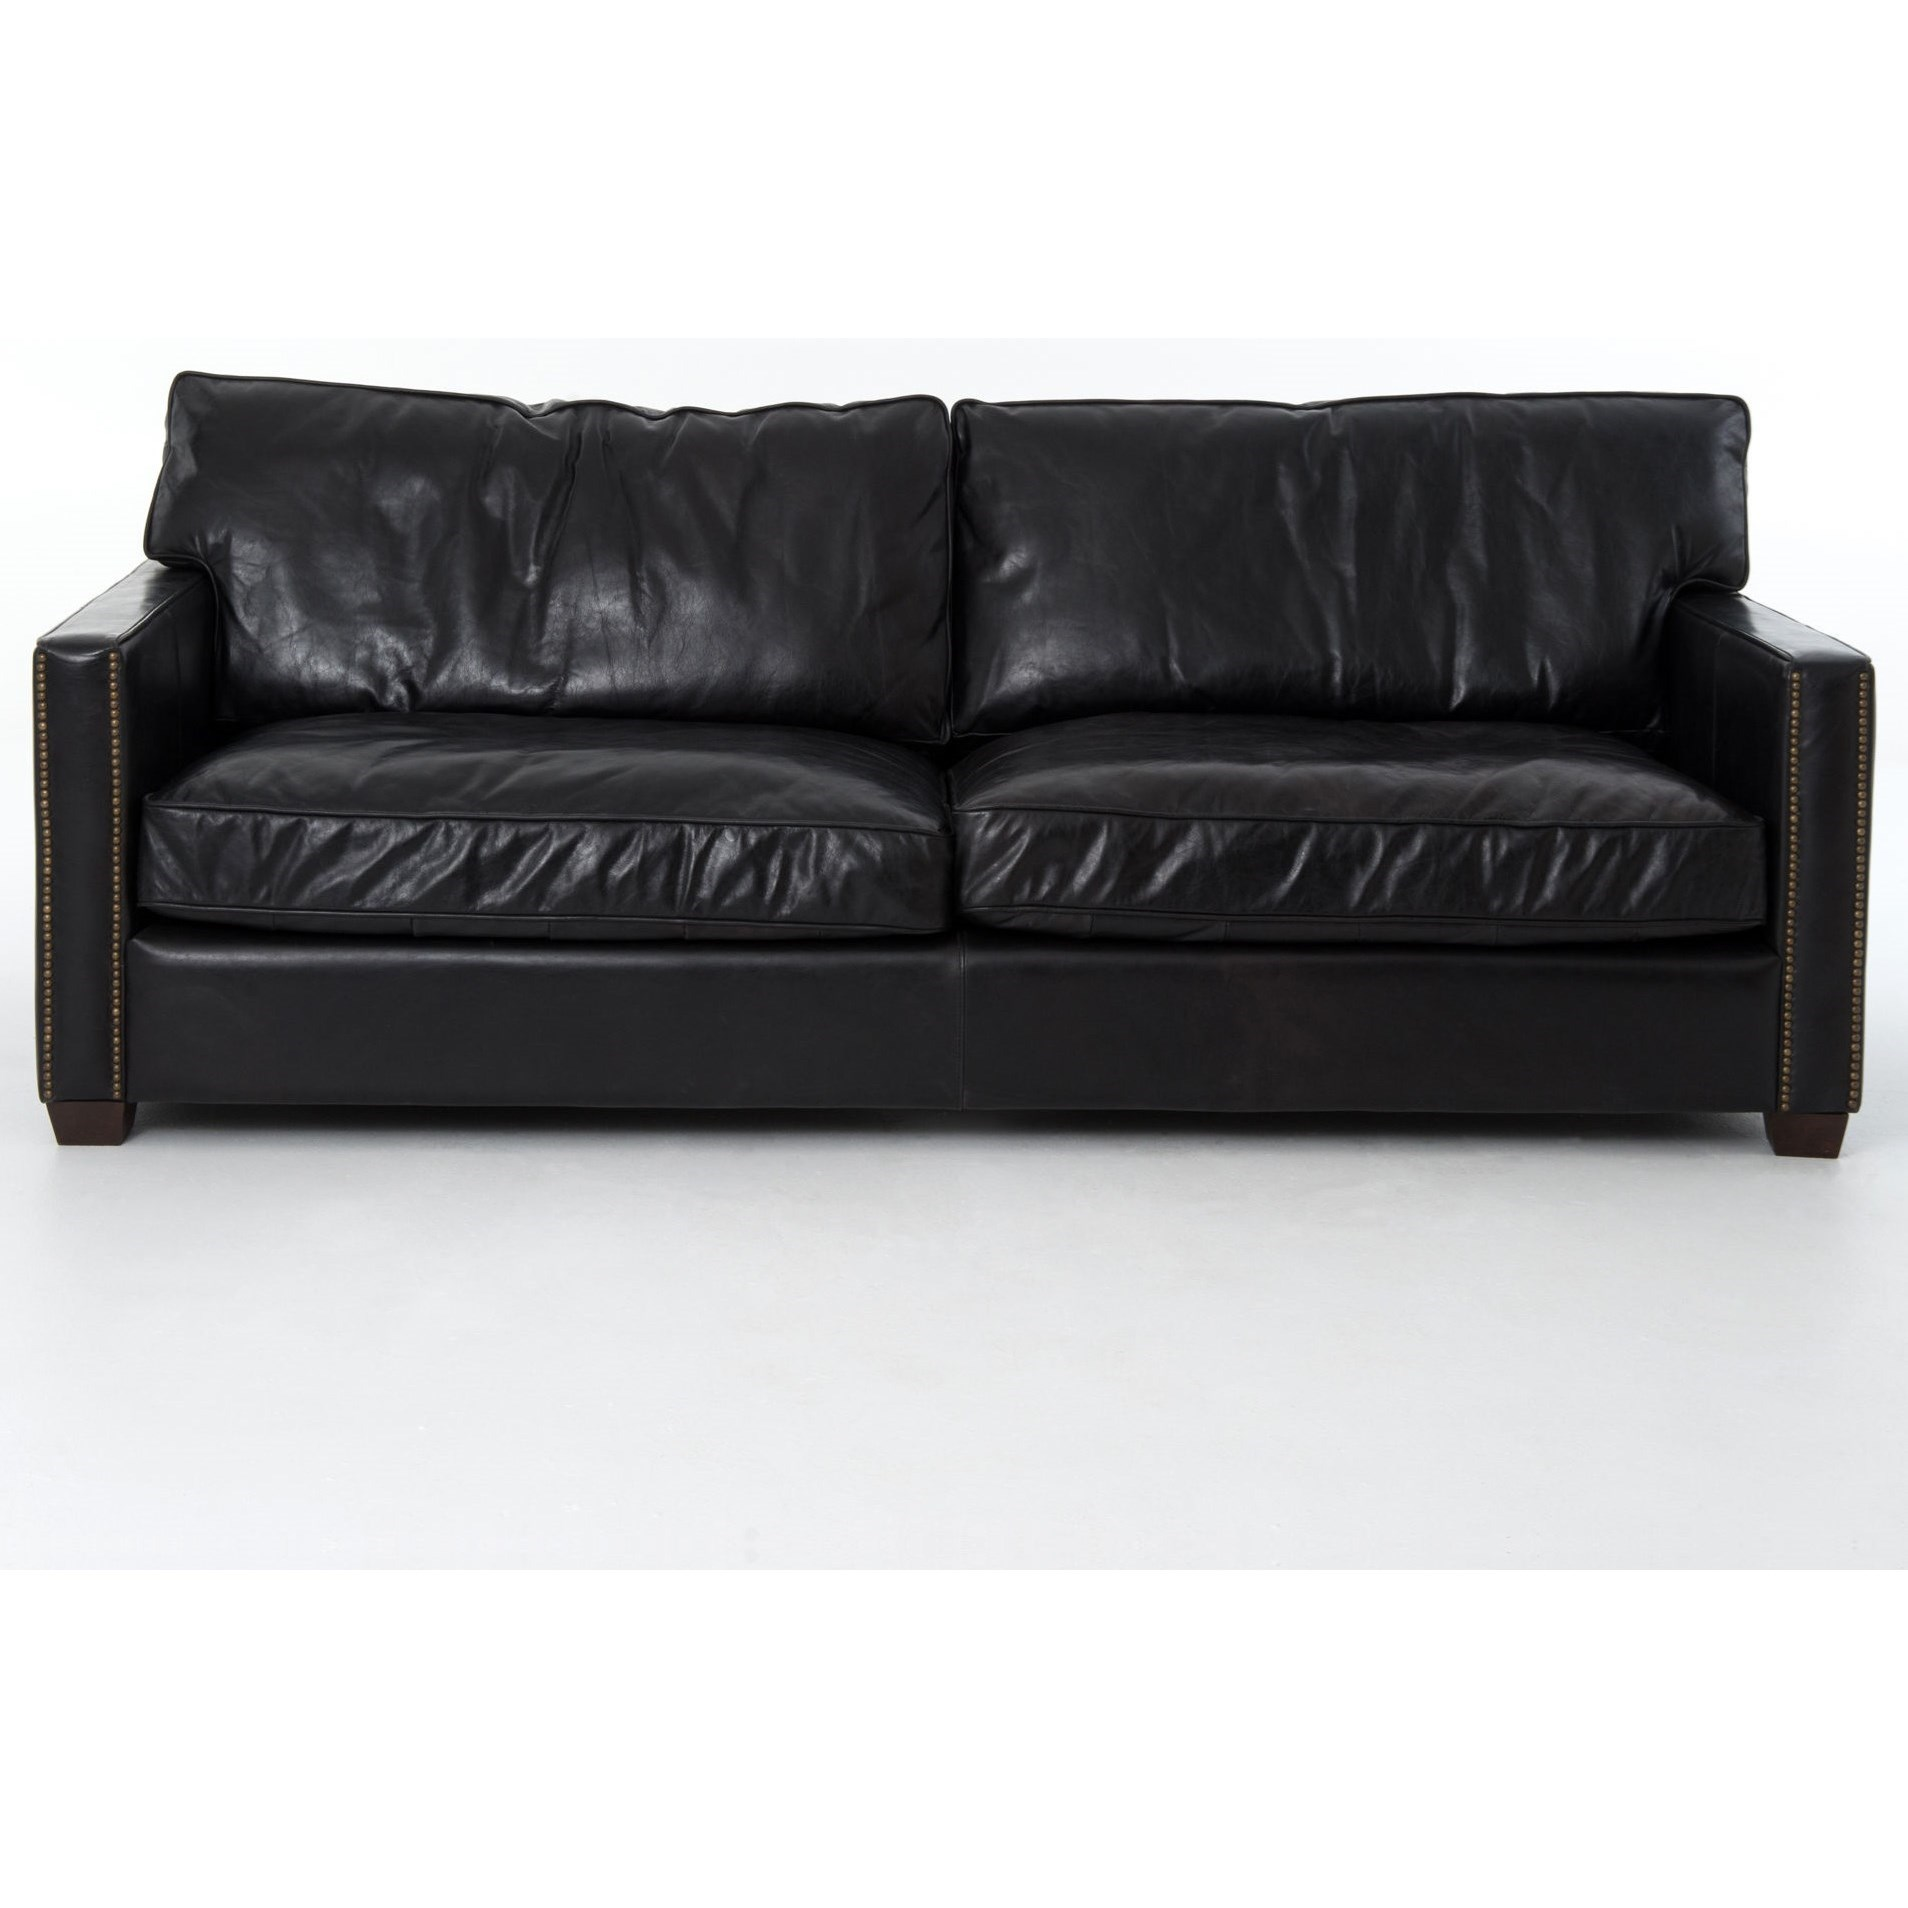 Old Sofa Larkin 88 Sofa With Old Saddle Black Leather By Four Hands Wolf